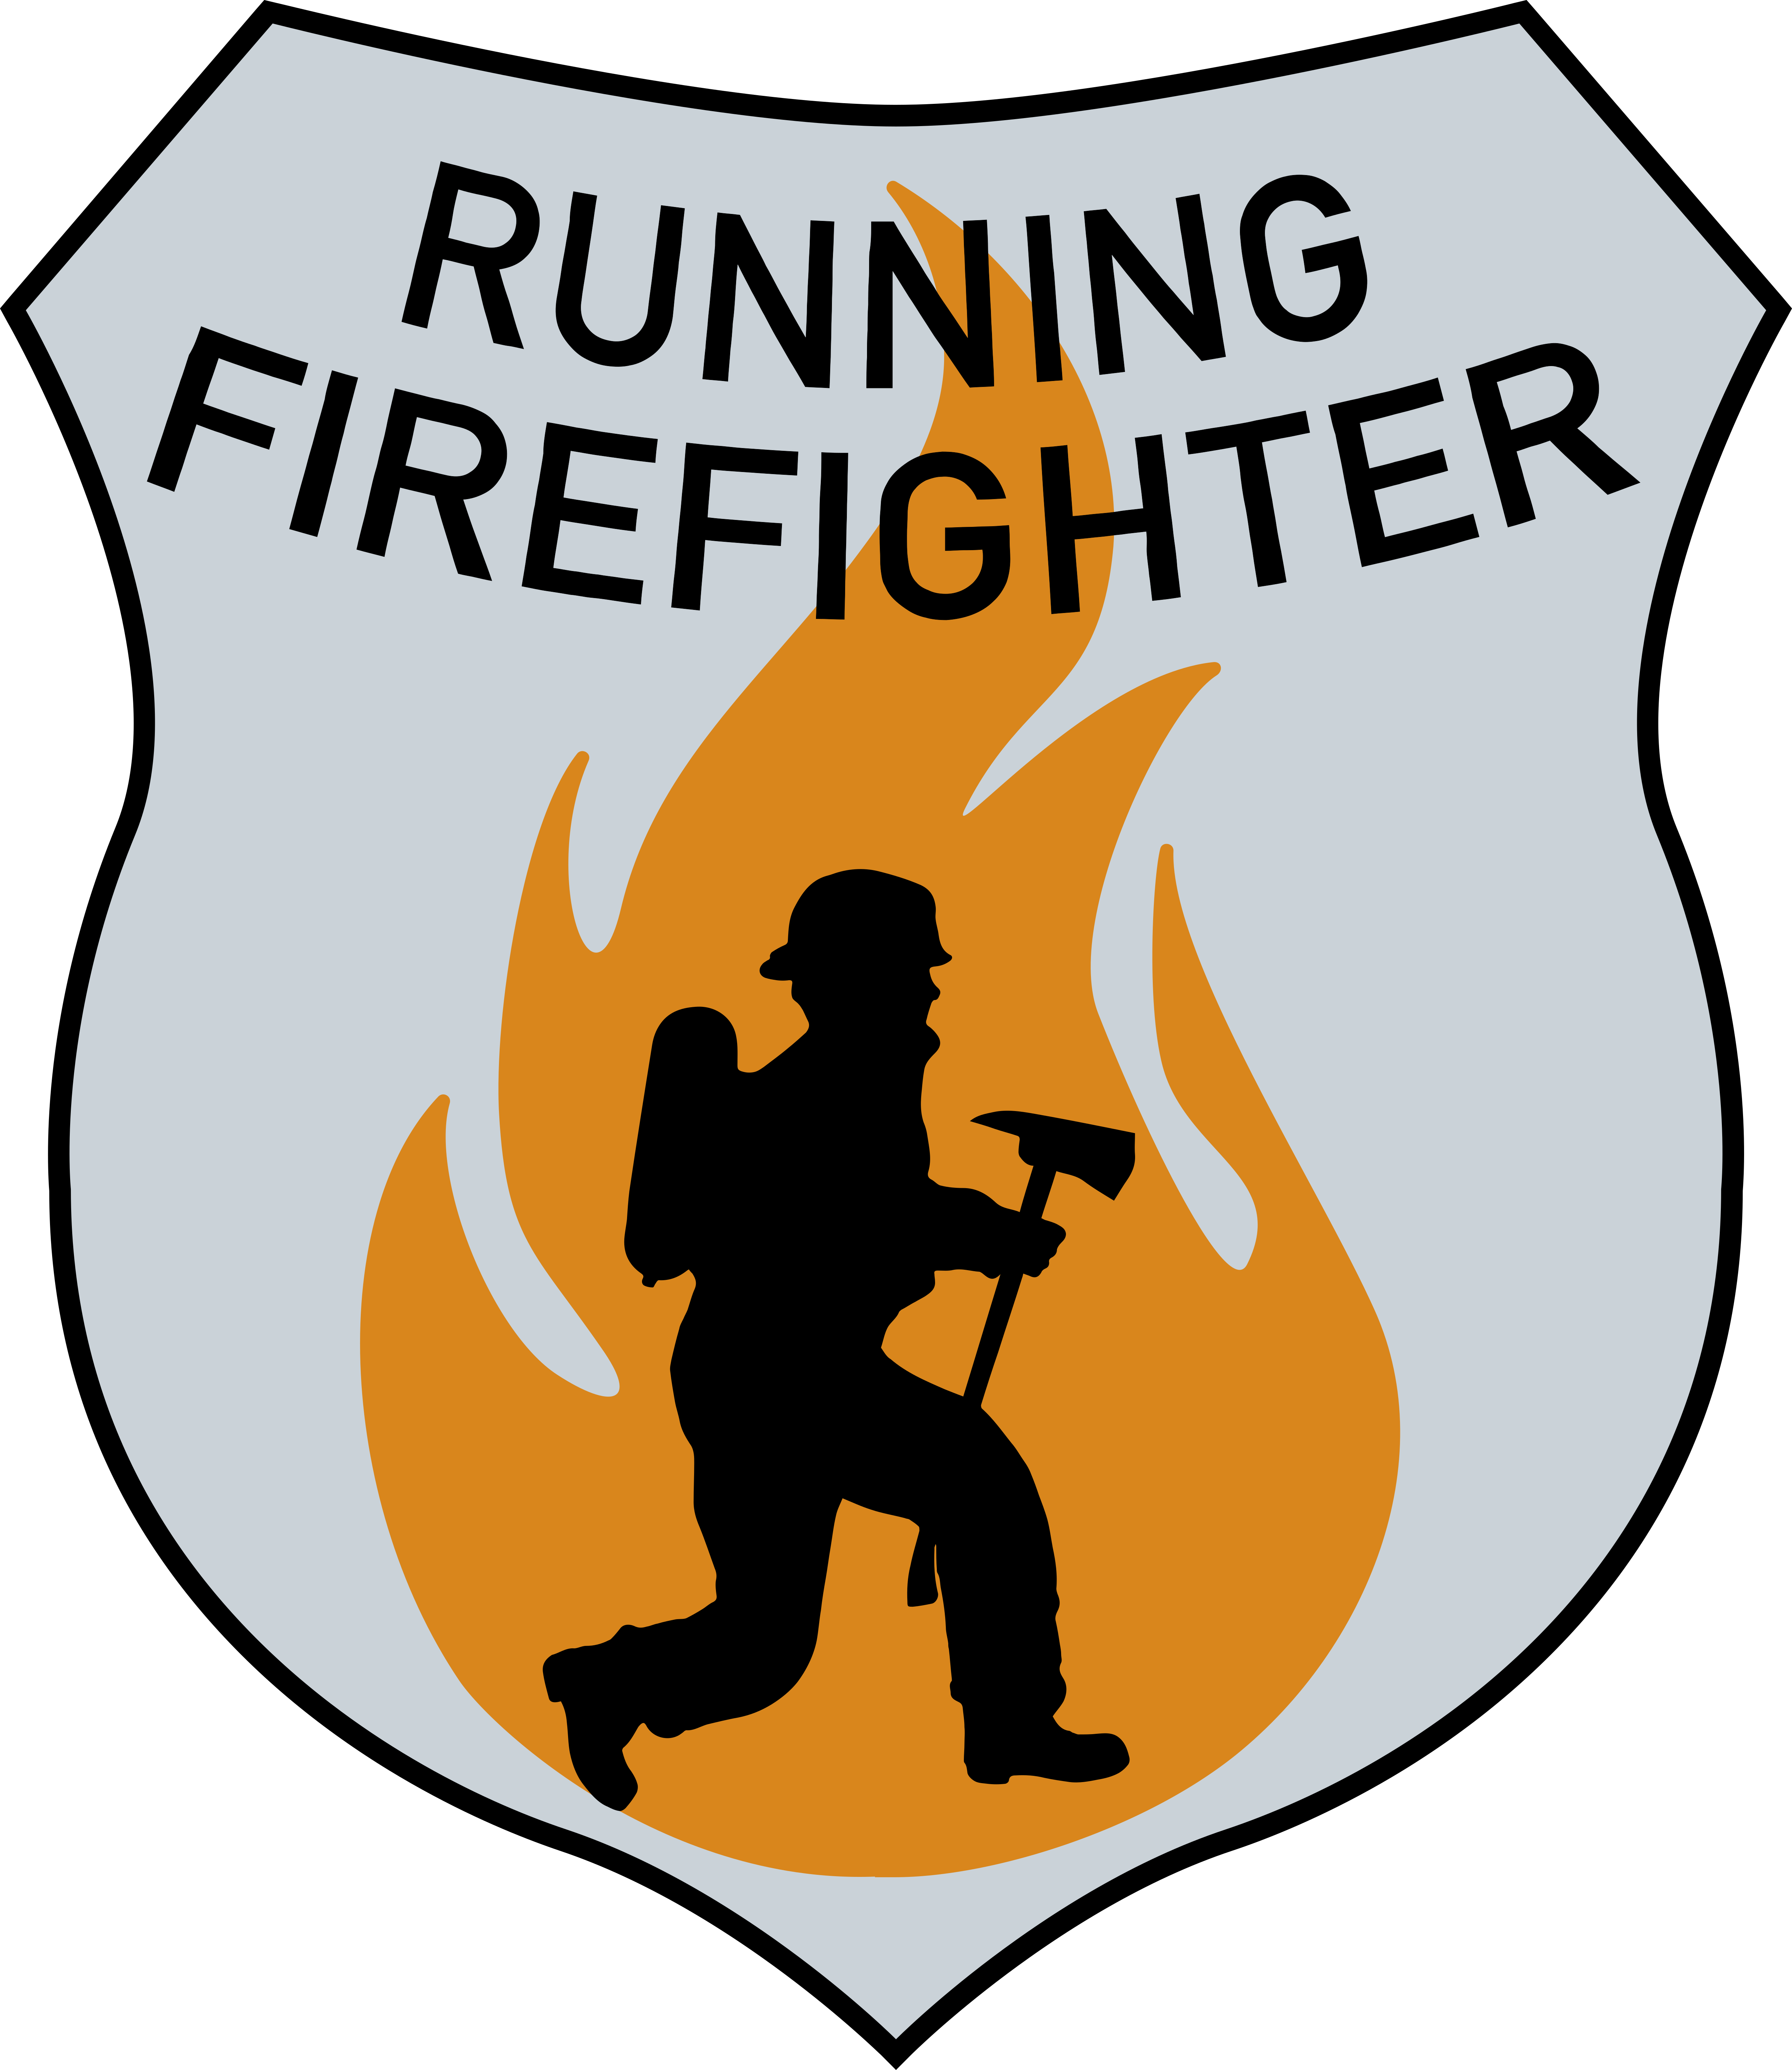 Running Firefighter